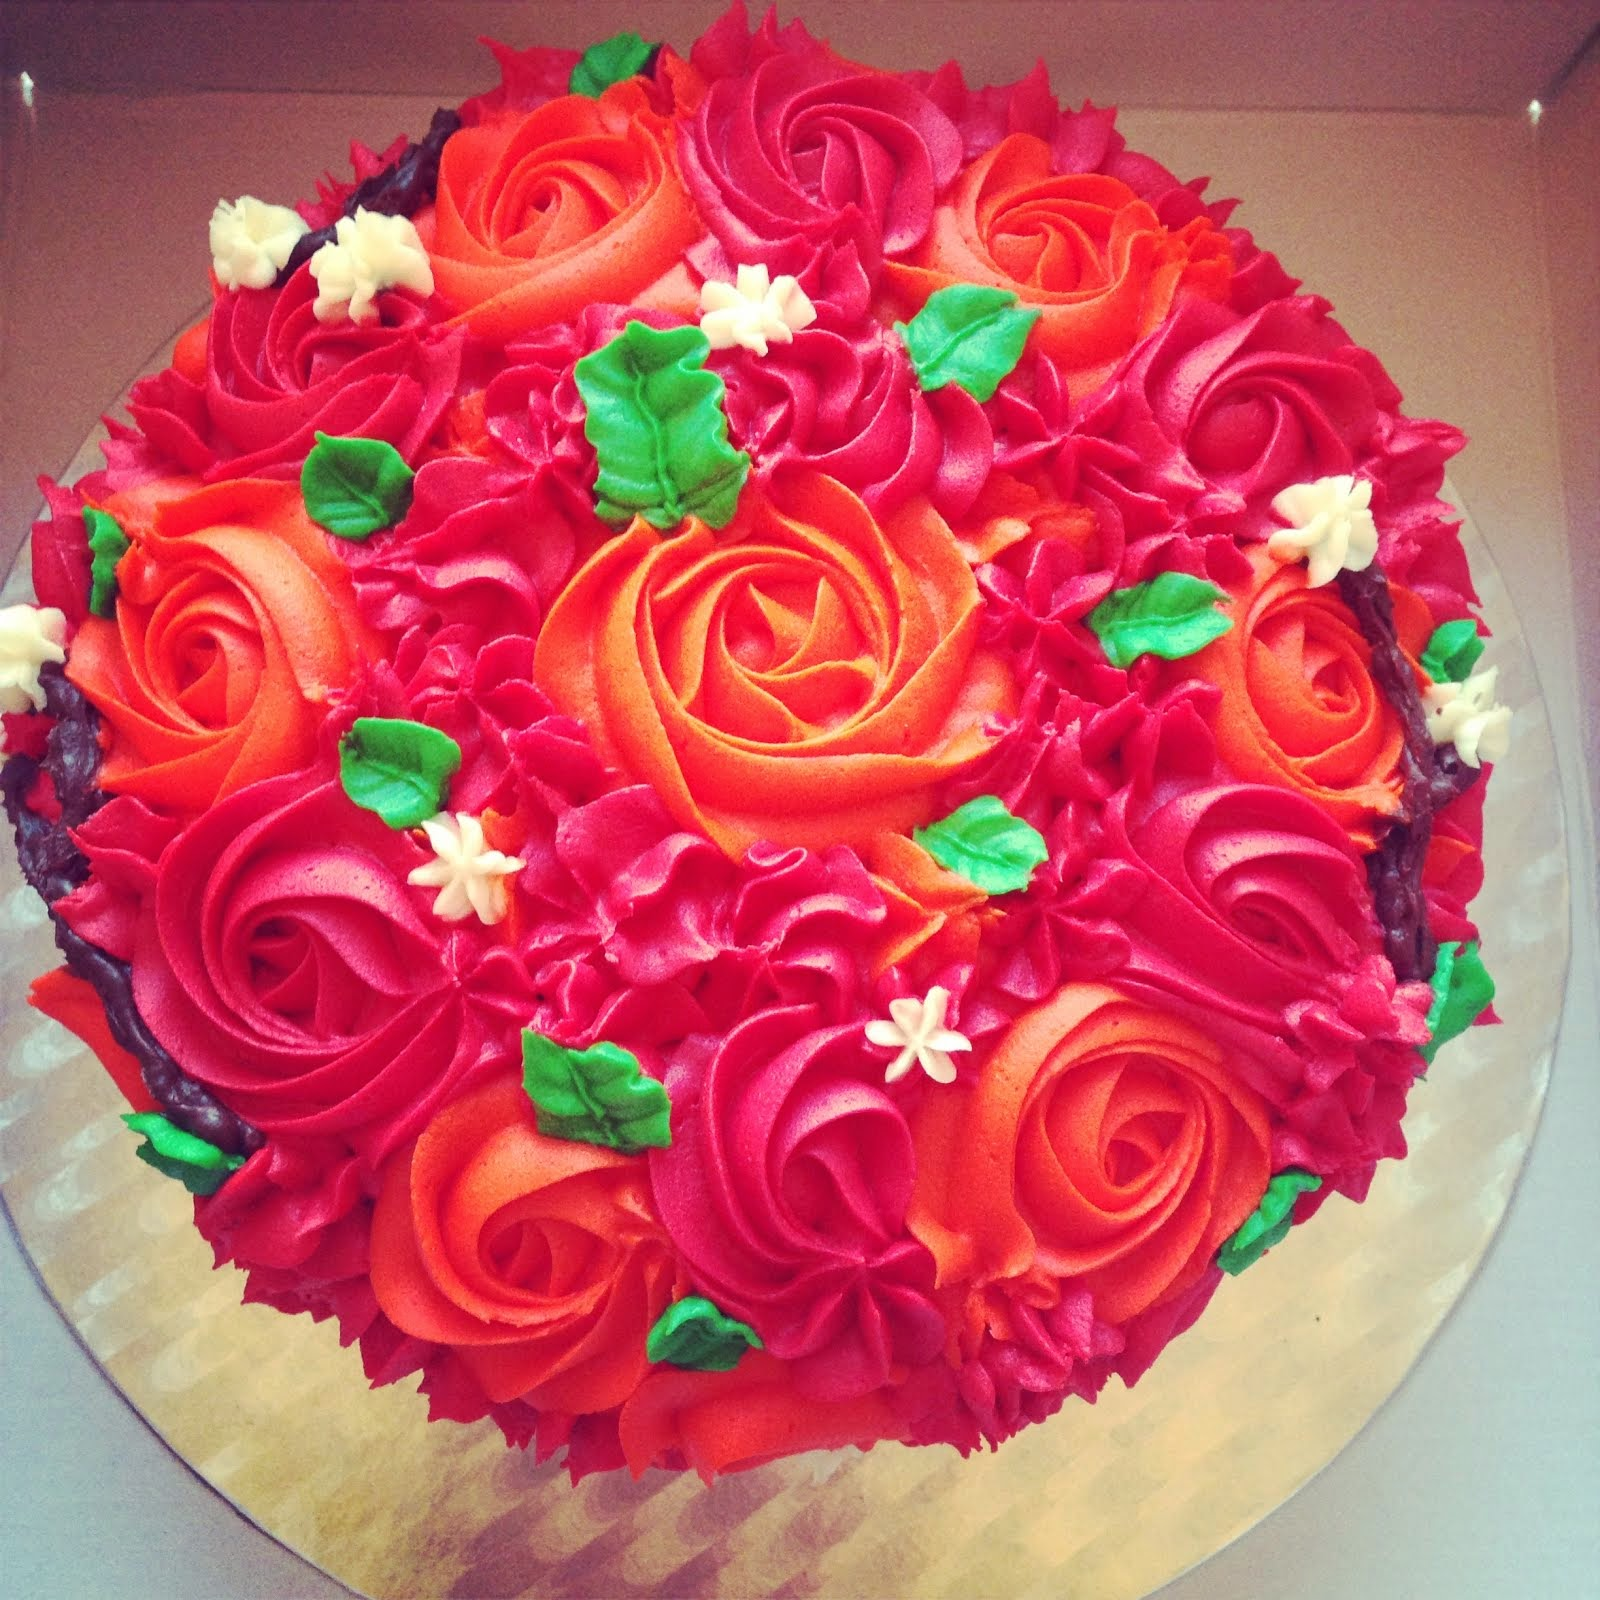 Rosette Piped Cake